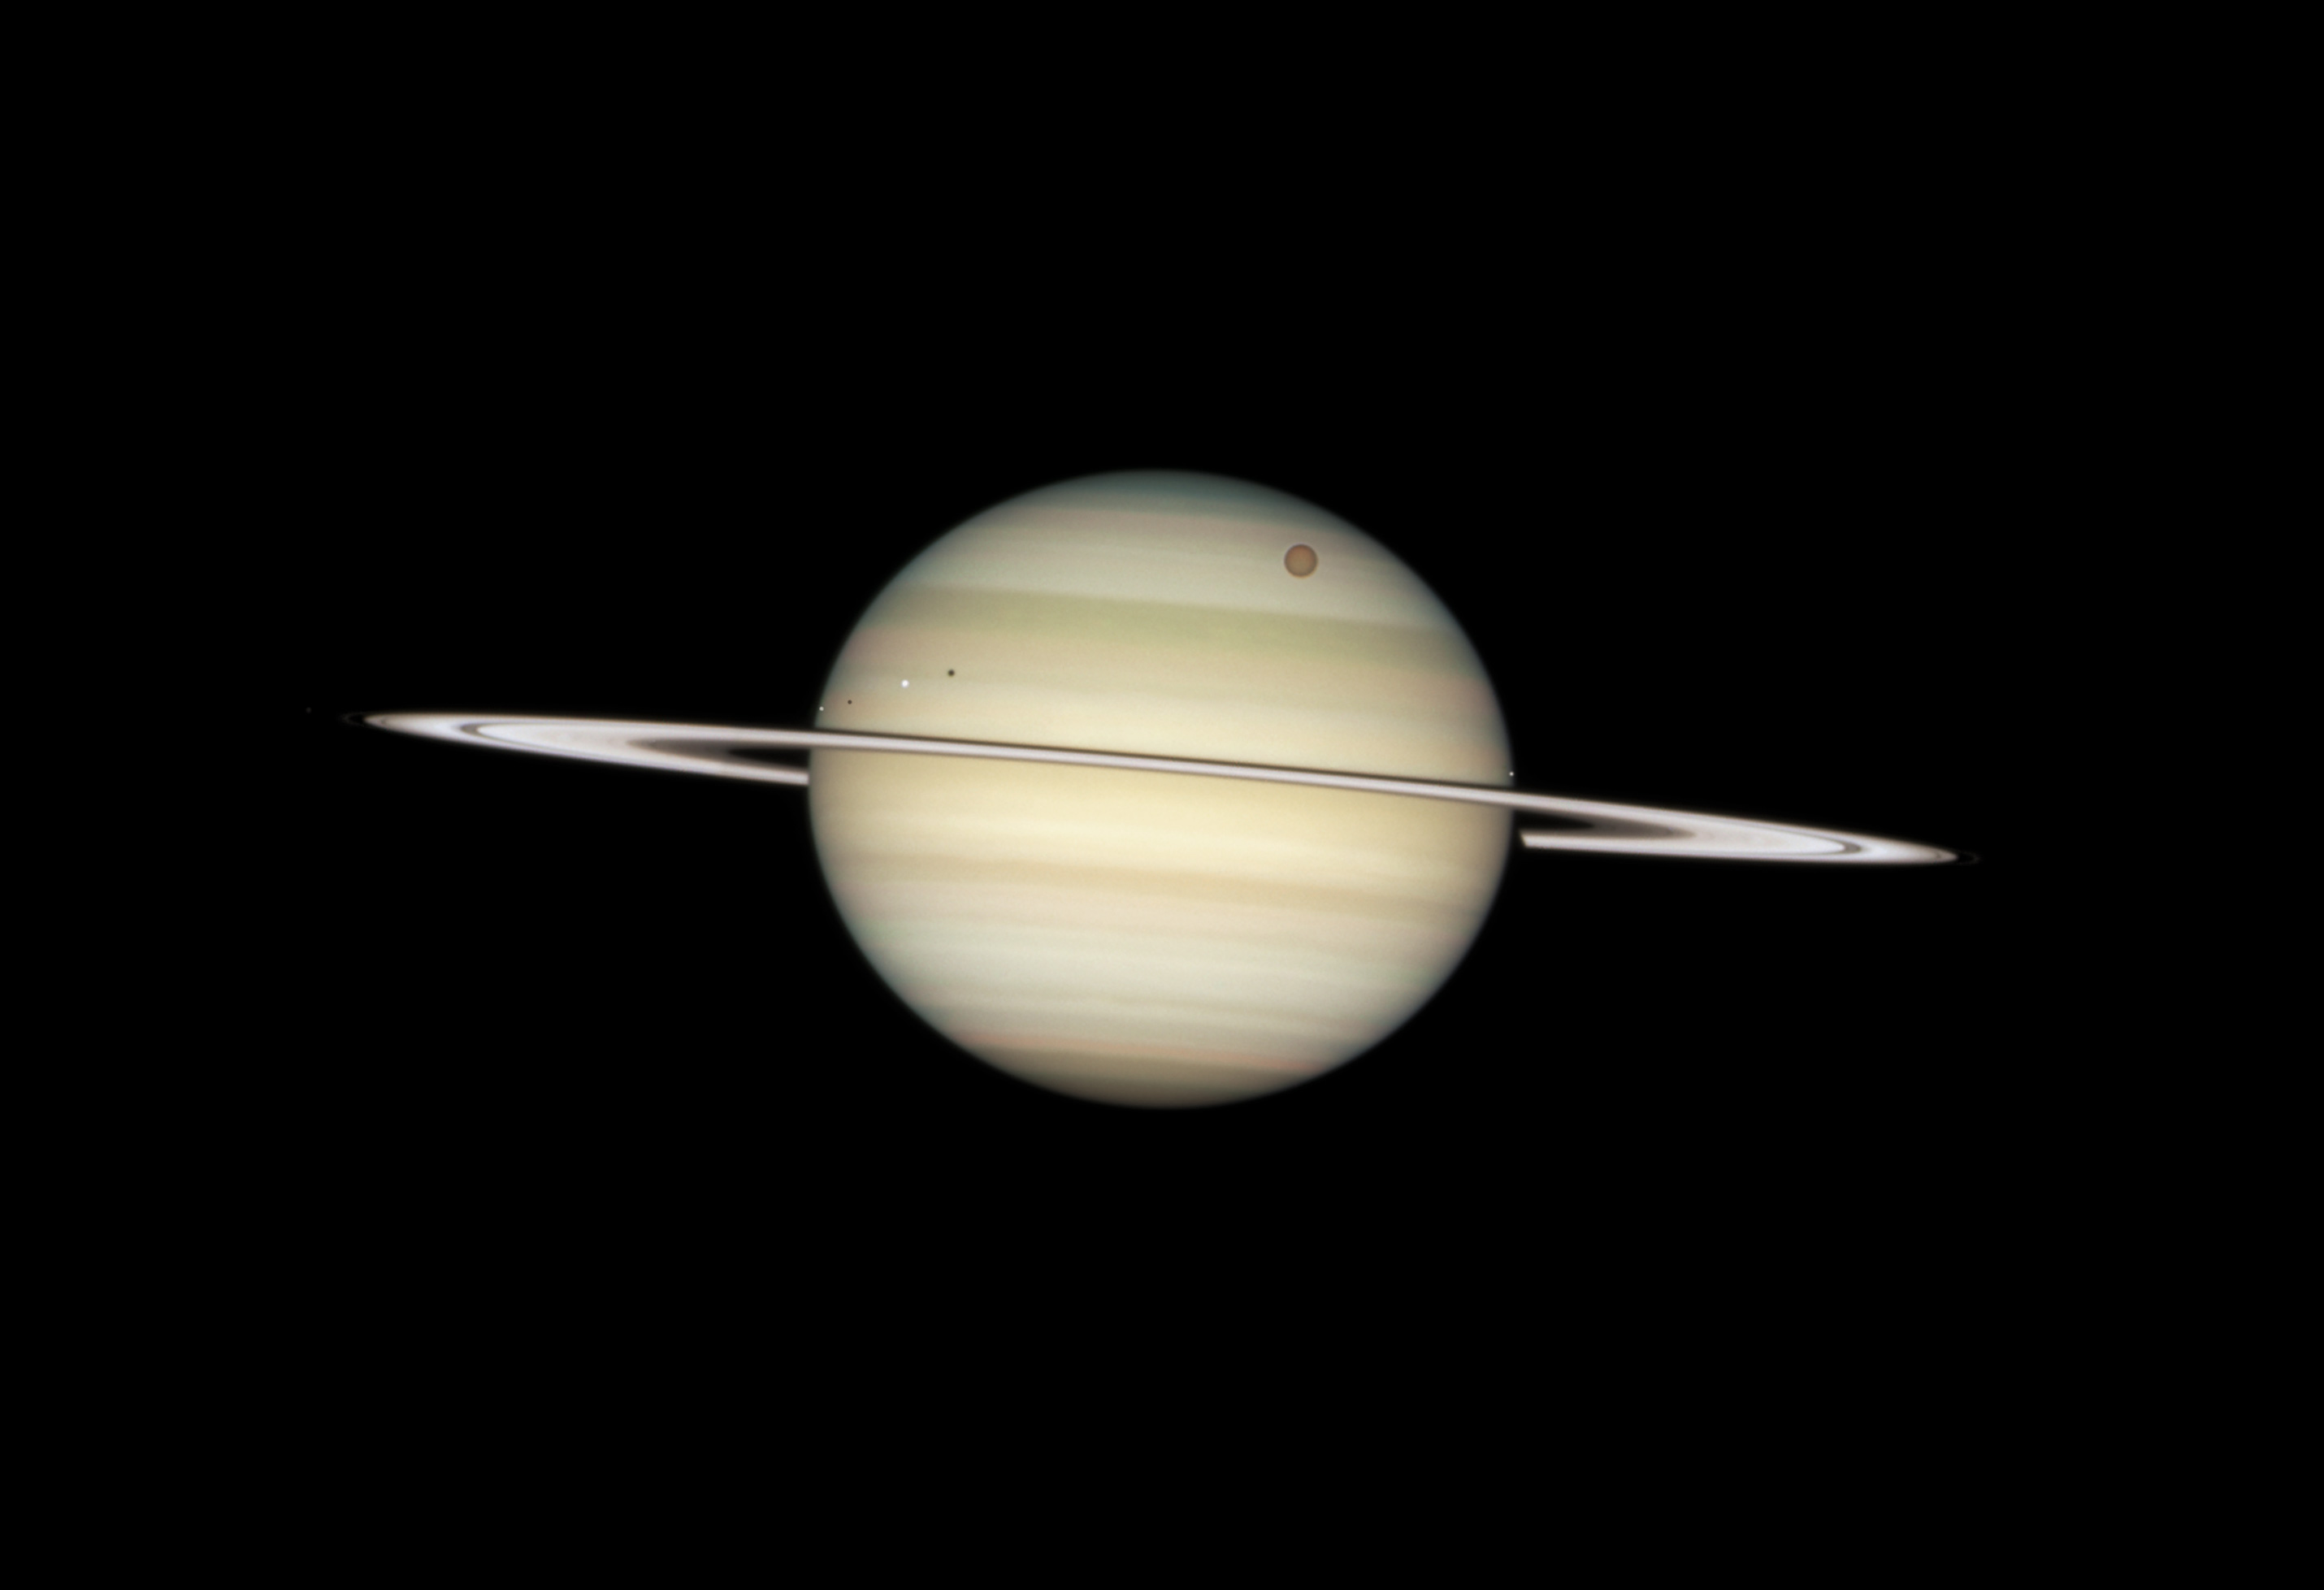 hubble images of saturn - photo #17